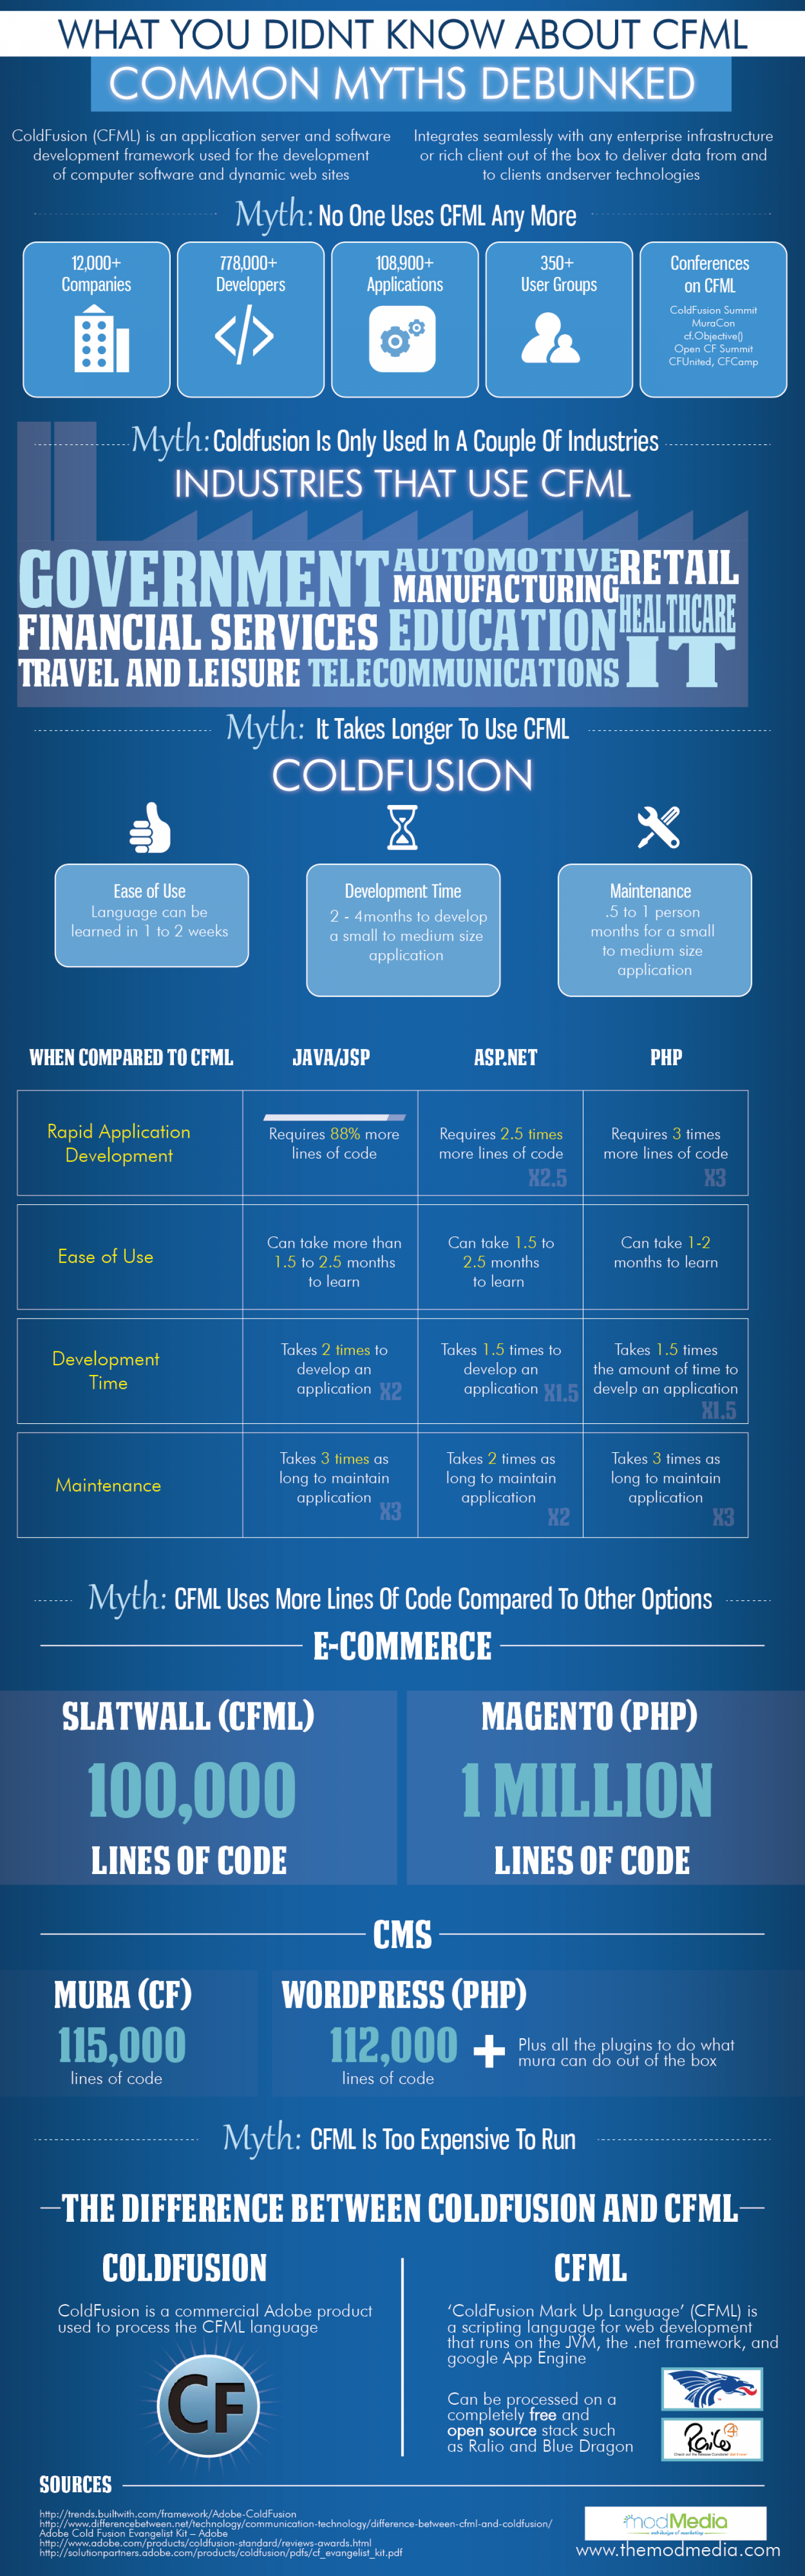 What You Didnt Know About CFML - Common Myths Debunked  Infographic